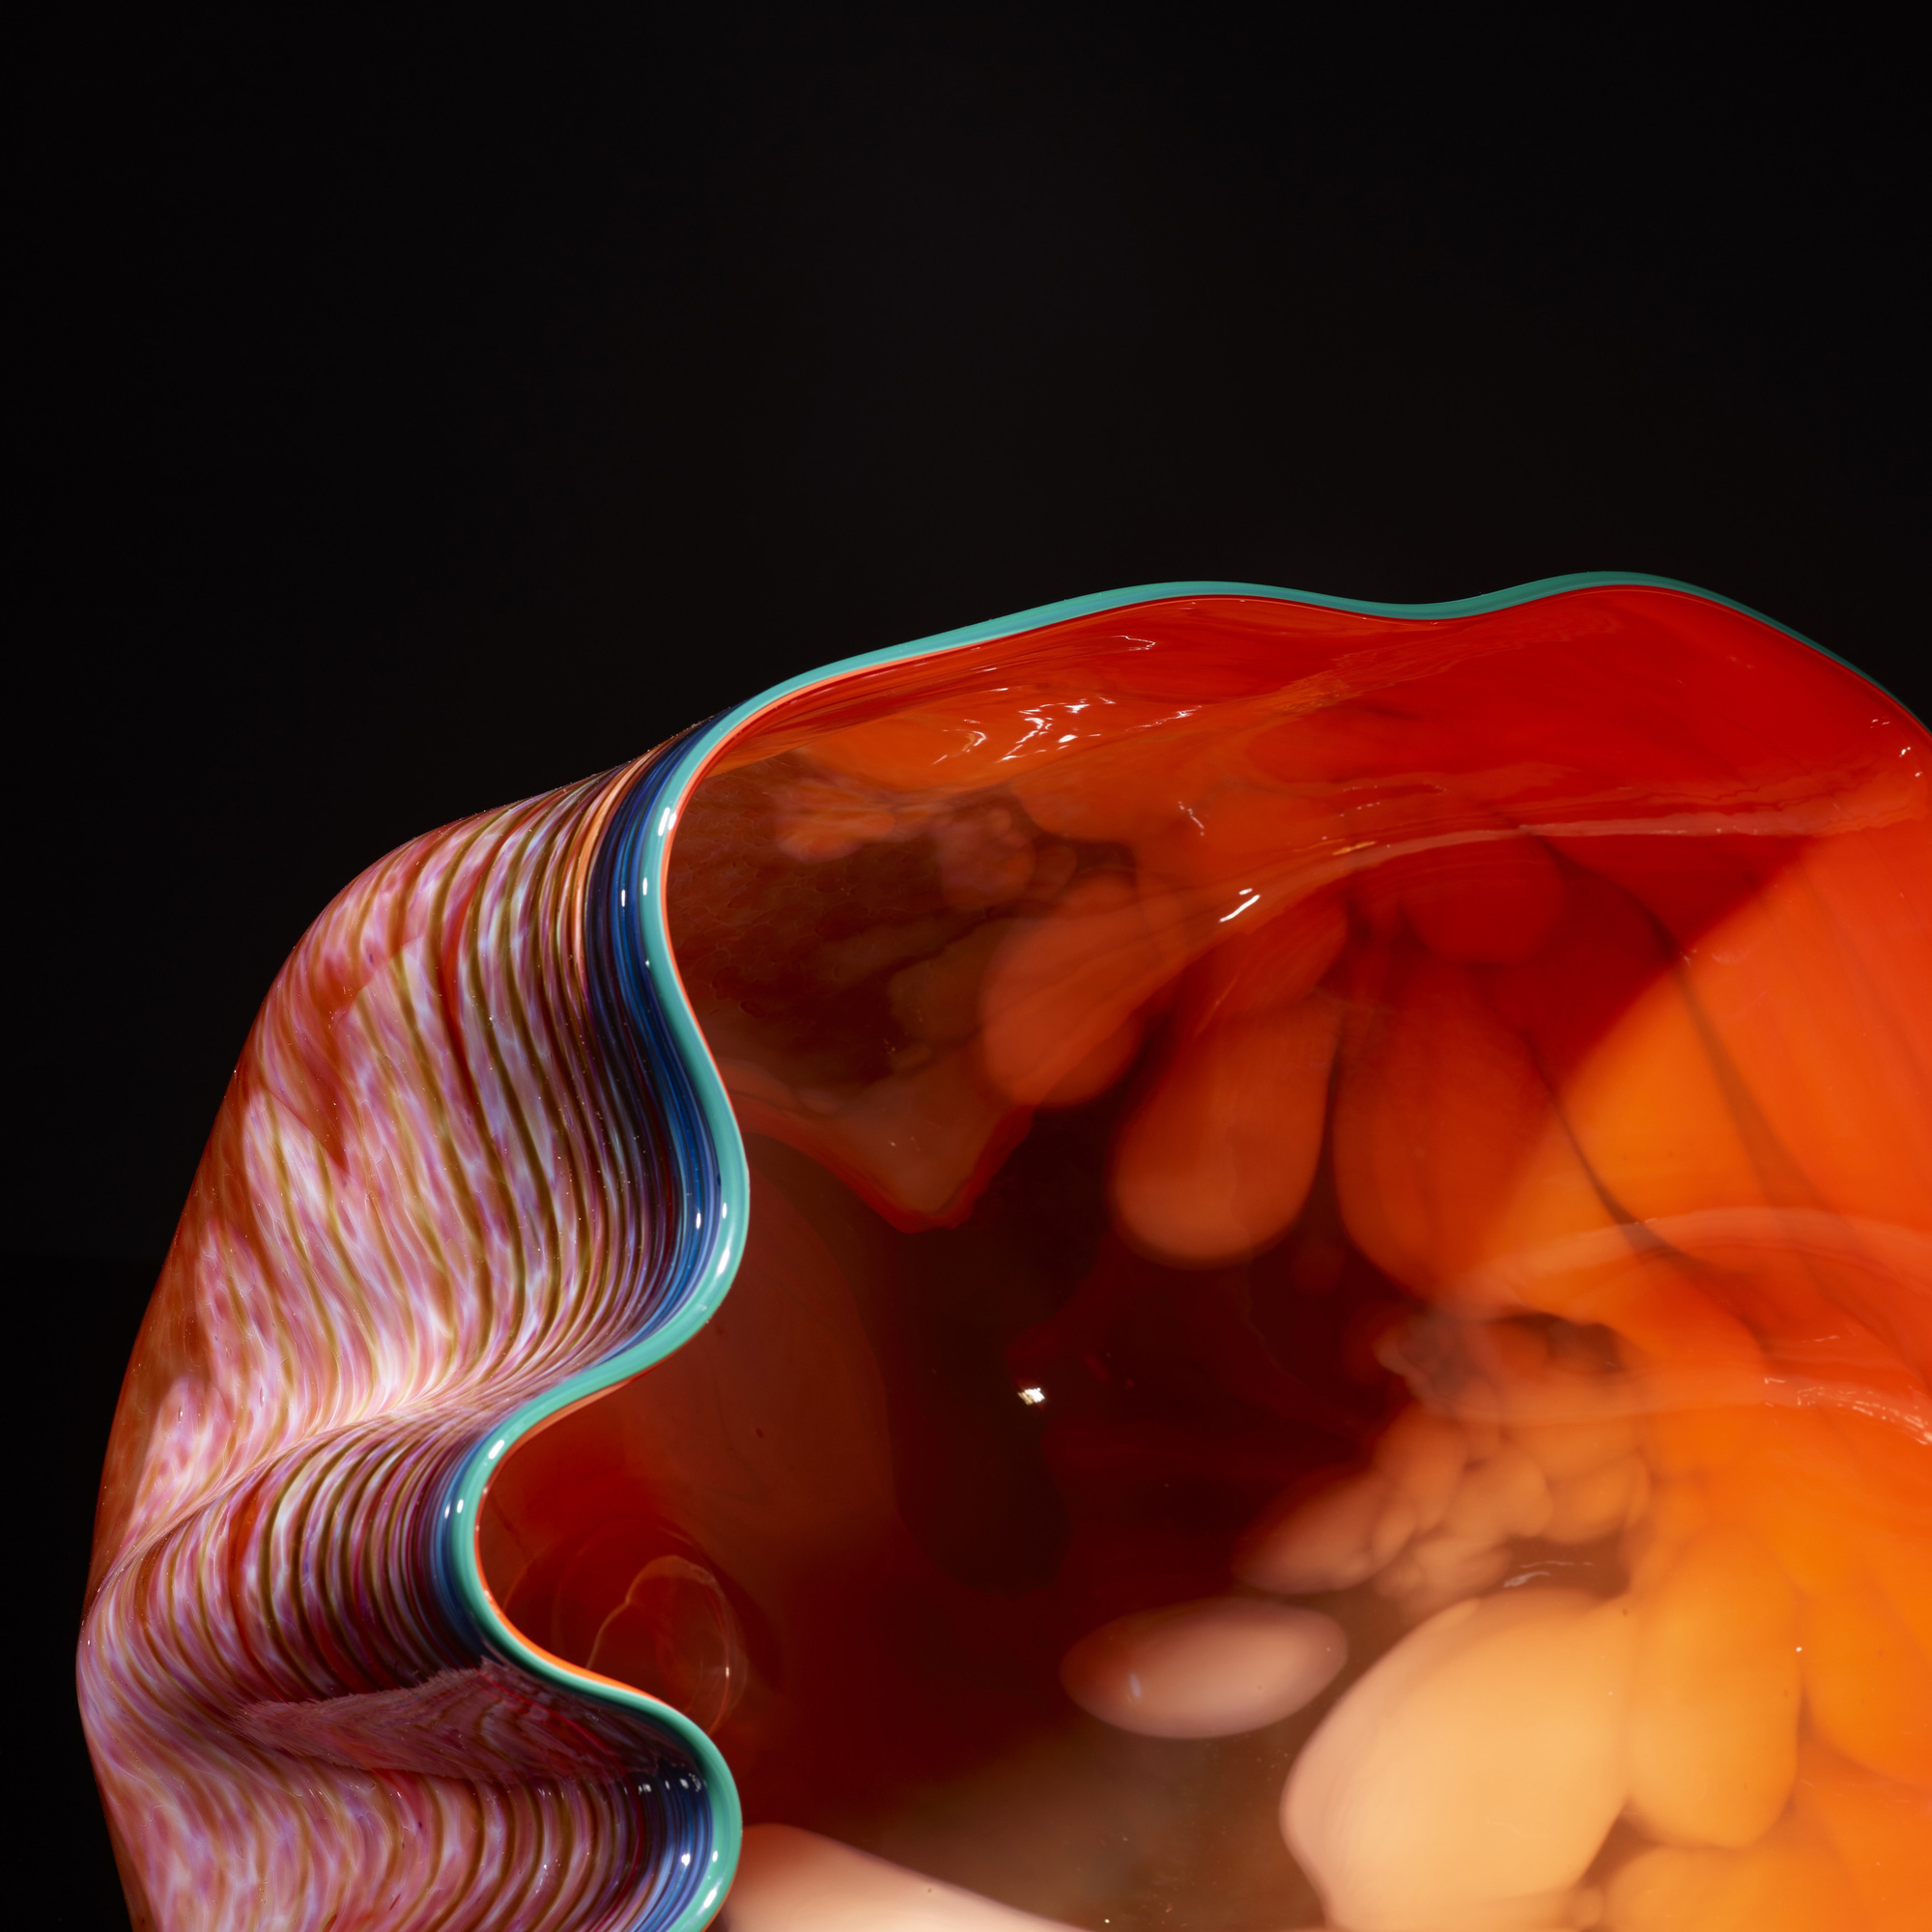 103: Dale Chihuly / Cadmium Red Light Macchia with Emerald Lip Wrap (3 of 4)